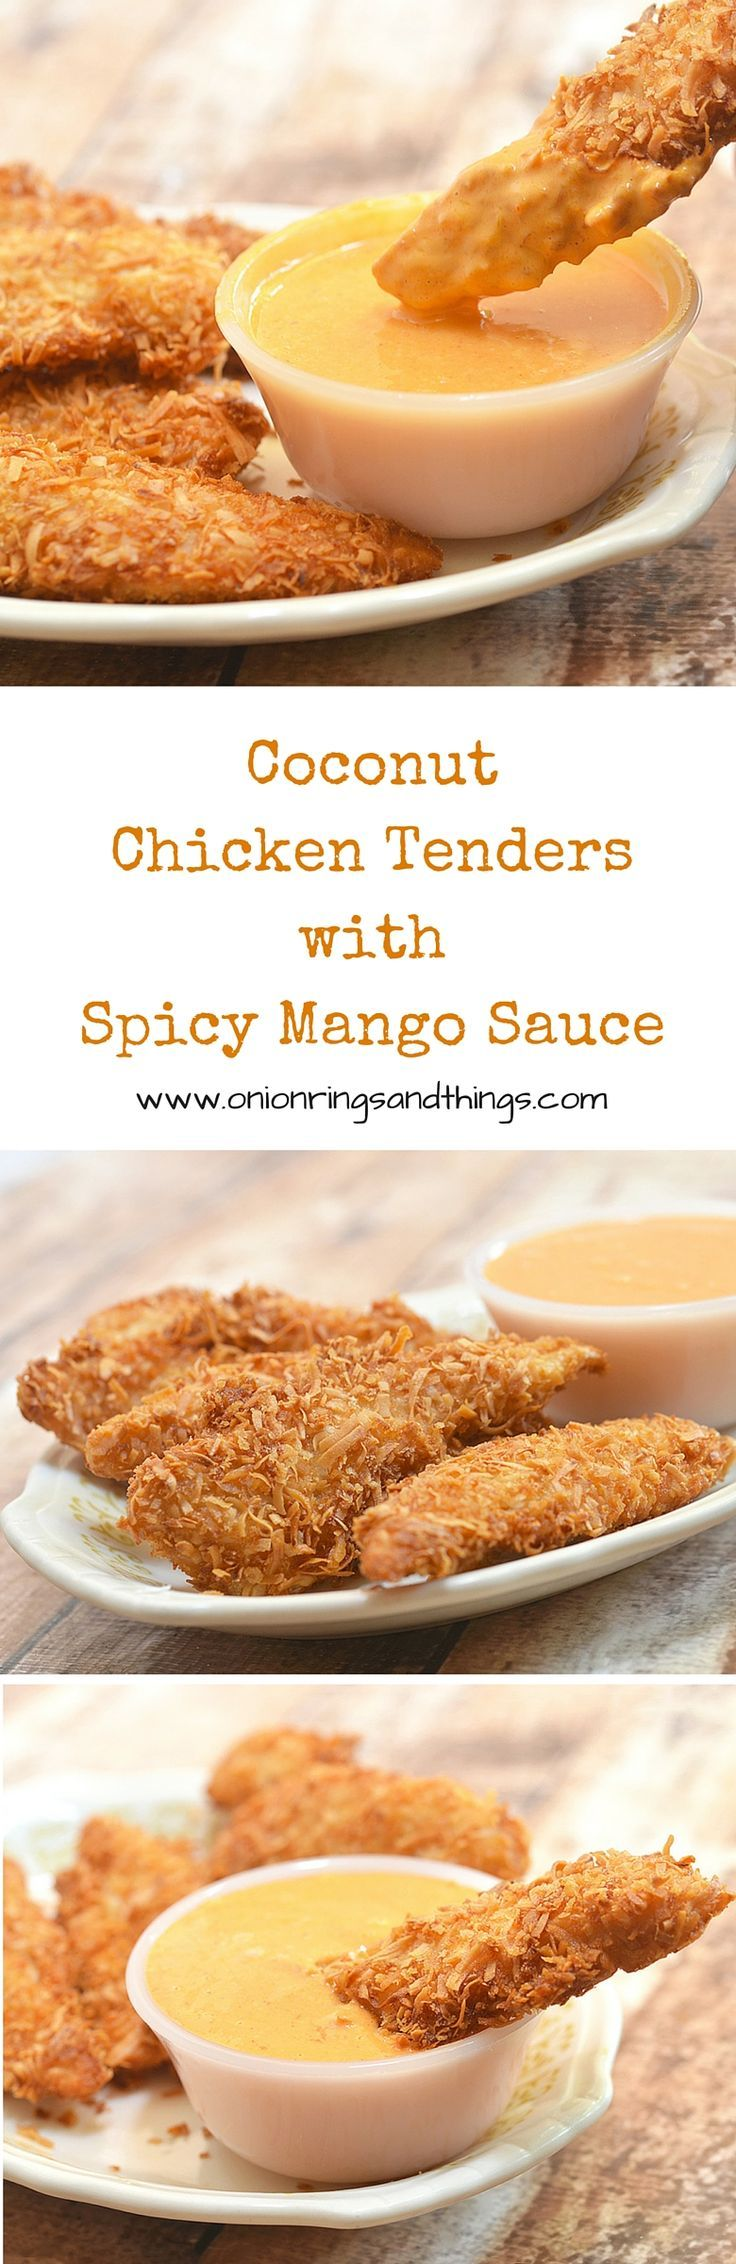 Golden, ultra flavorful and amazingly crunchy, these coconut chicken tenders are absolutely addicting! Served with a spicy mango sauce, you'll be hard pressed to resist!